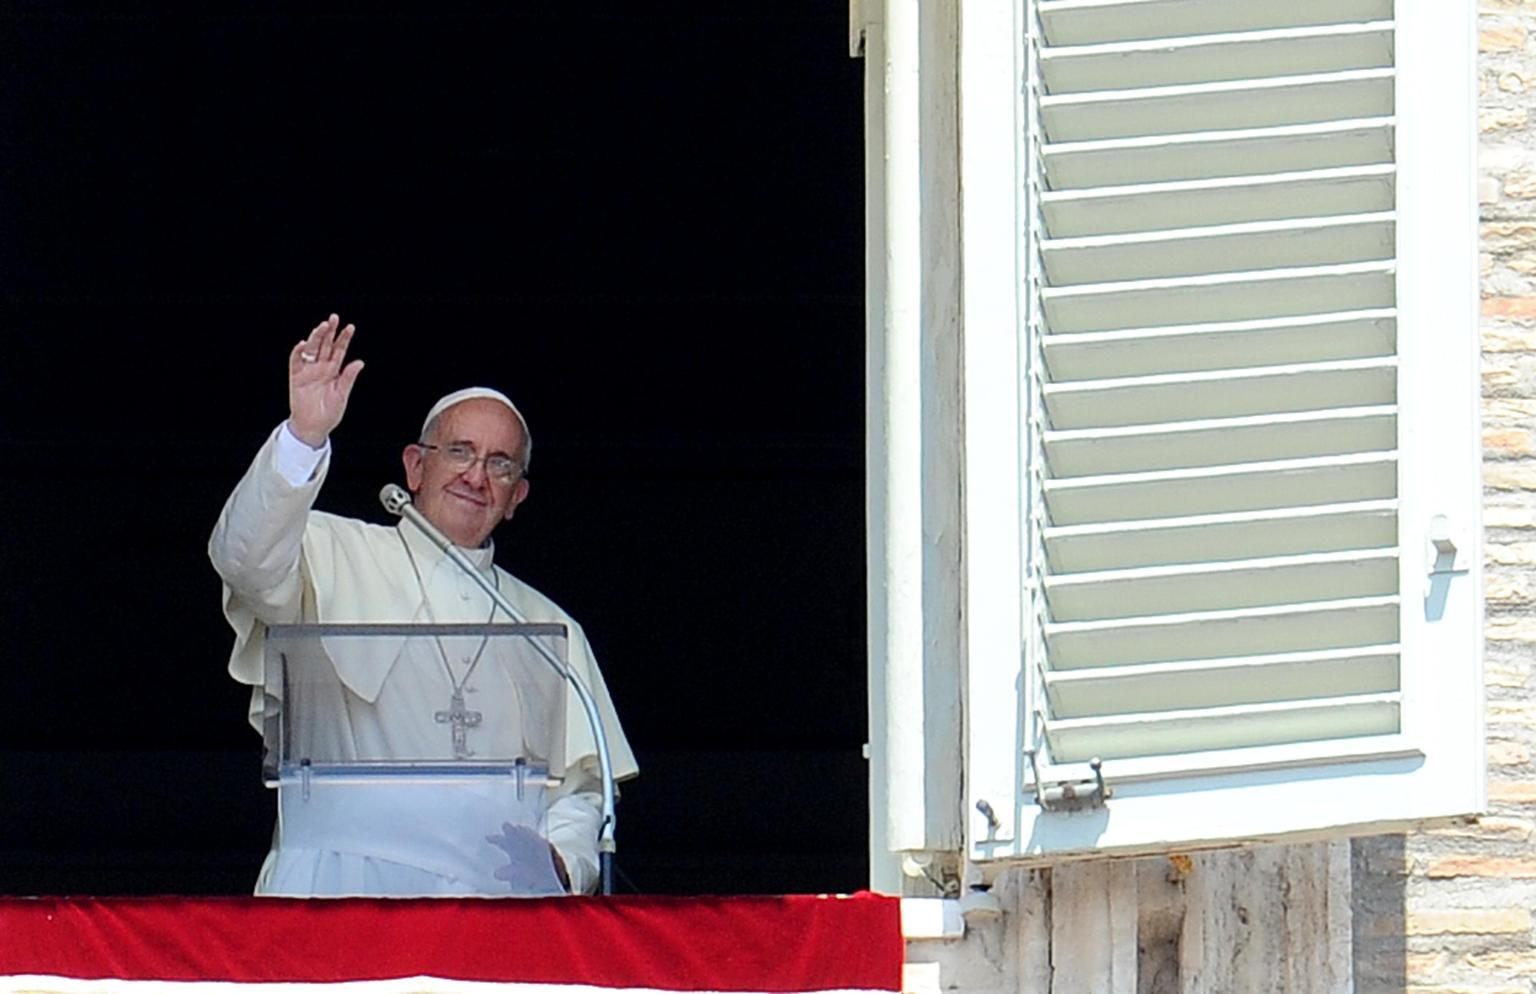 Pope Francis greets faithful during the Angelus payer, in St. Peter's square, Vatican City, 21 July 2013.  ANSA/ETTORE FERRARI